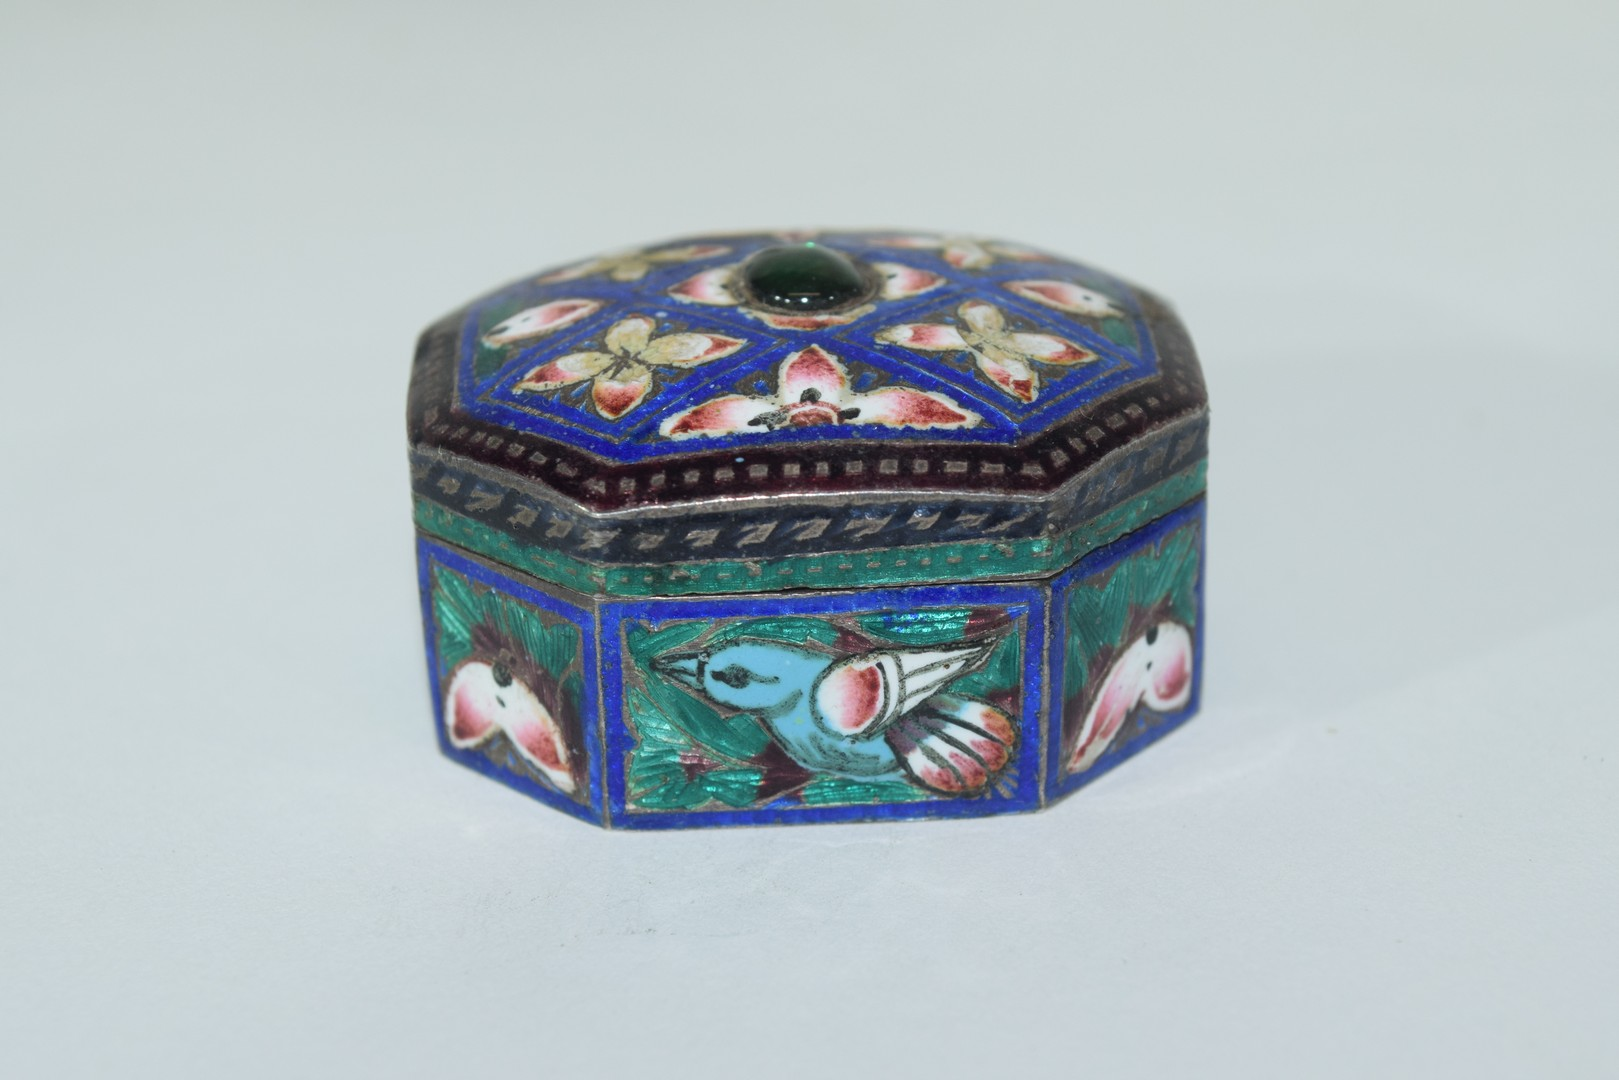 Two enamel Indian elephants with howdahs and a pill box - Image 5 of 9